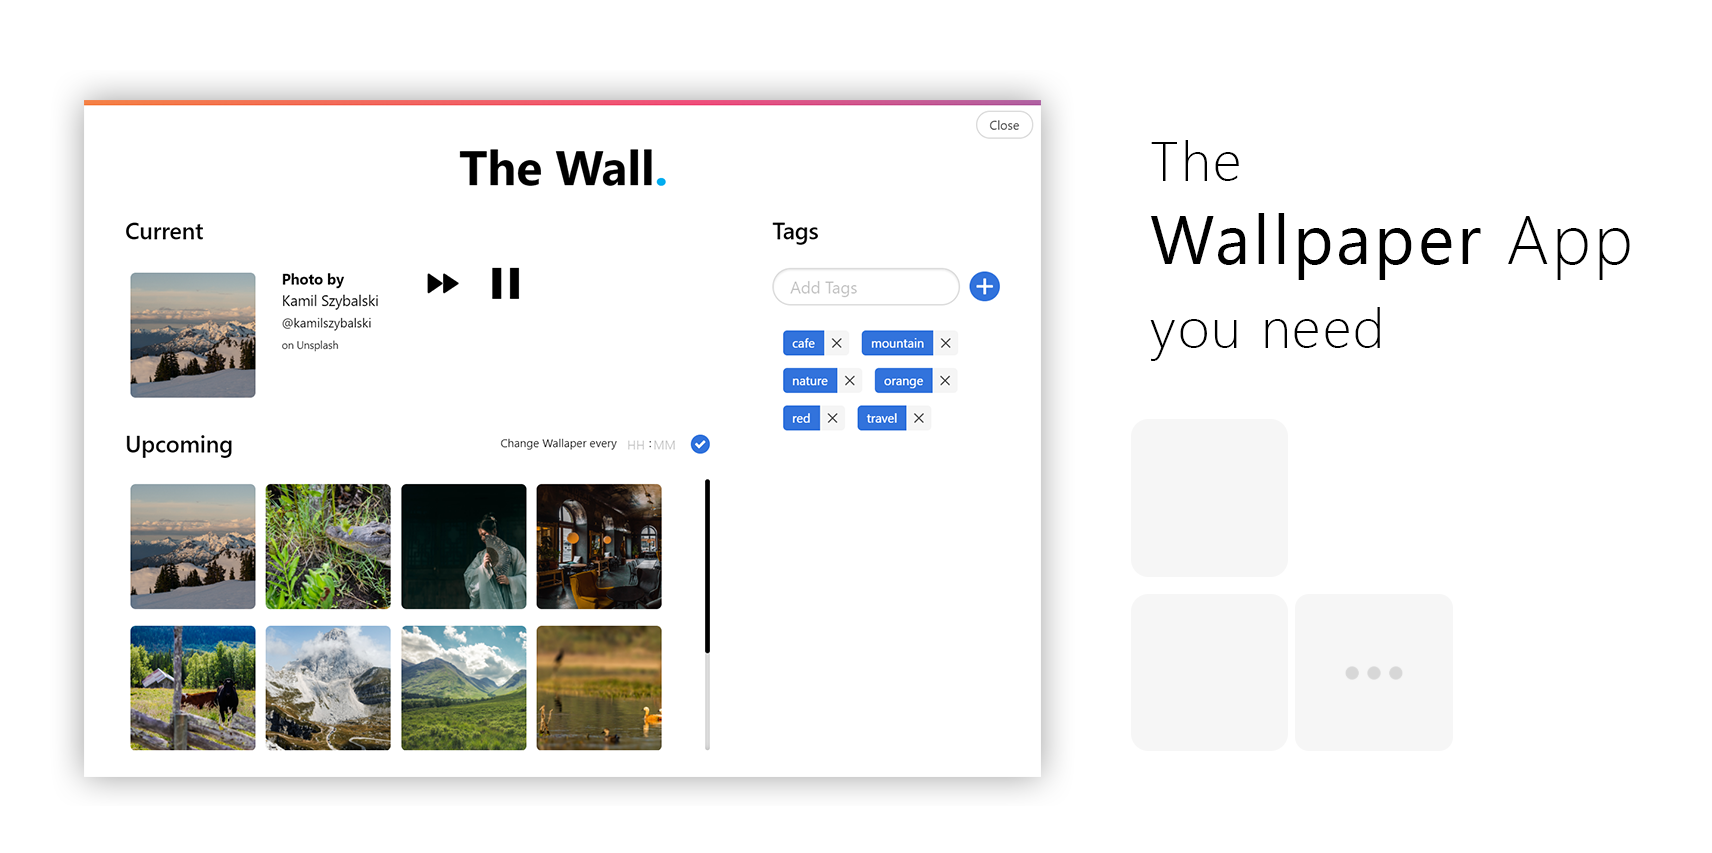 The Wallpaper app you need